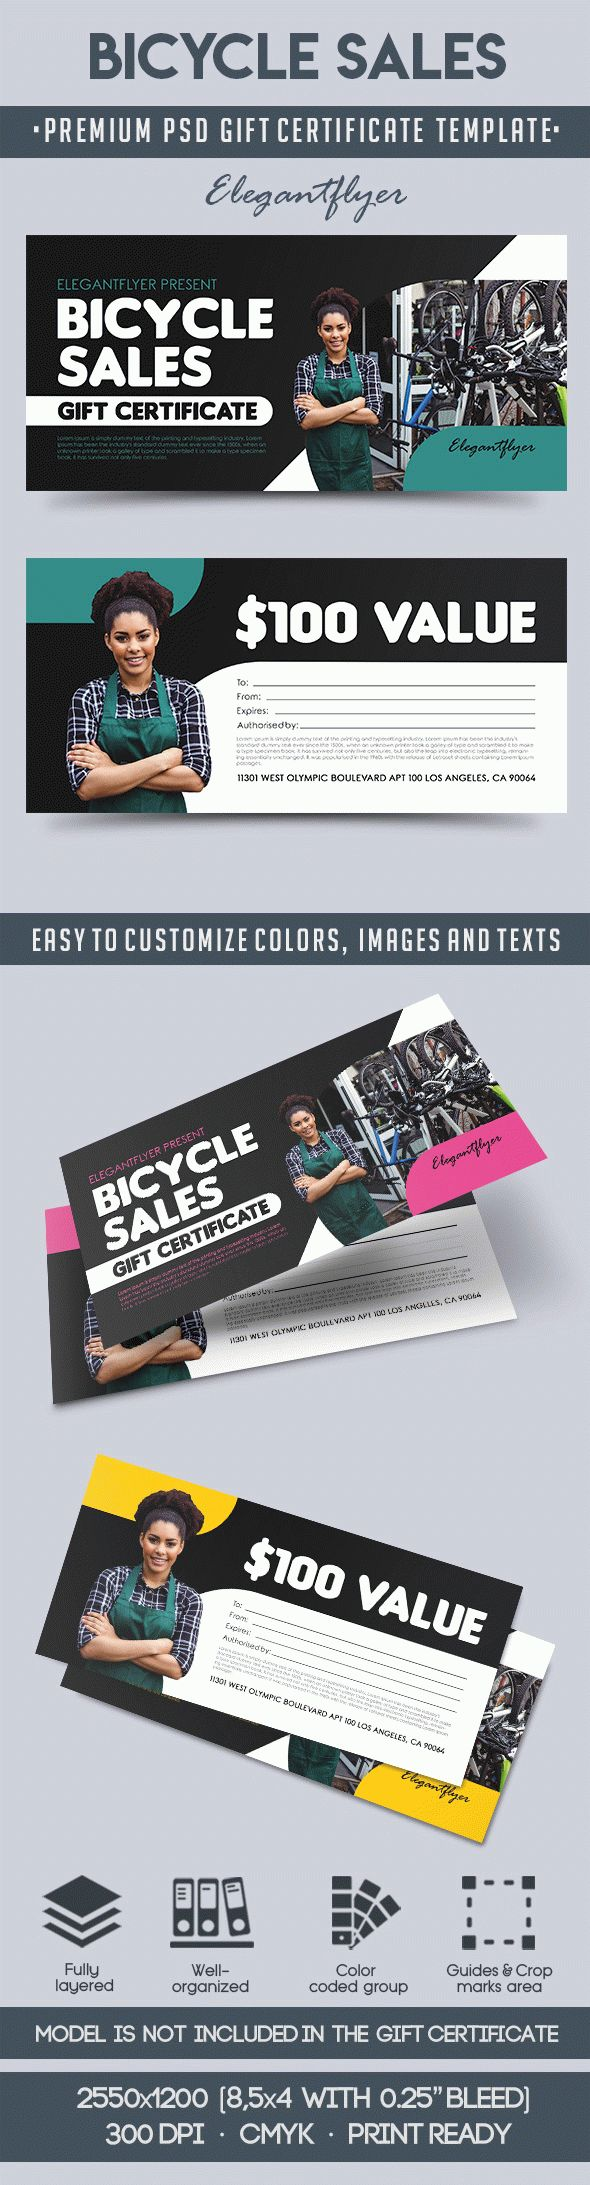 Bicycle Sales – Premium Gift Certificate PSD Template